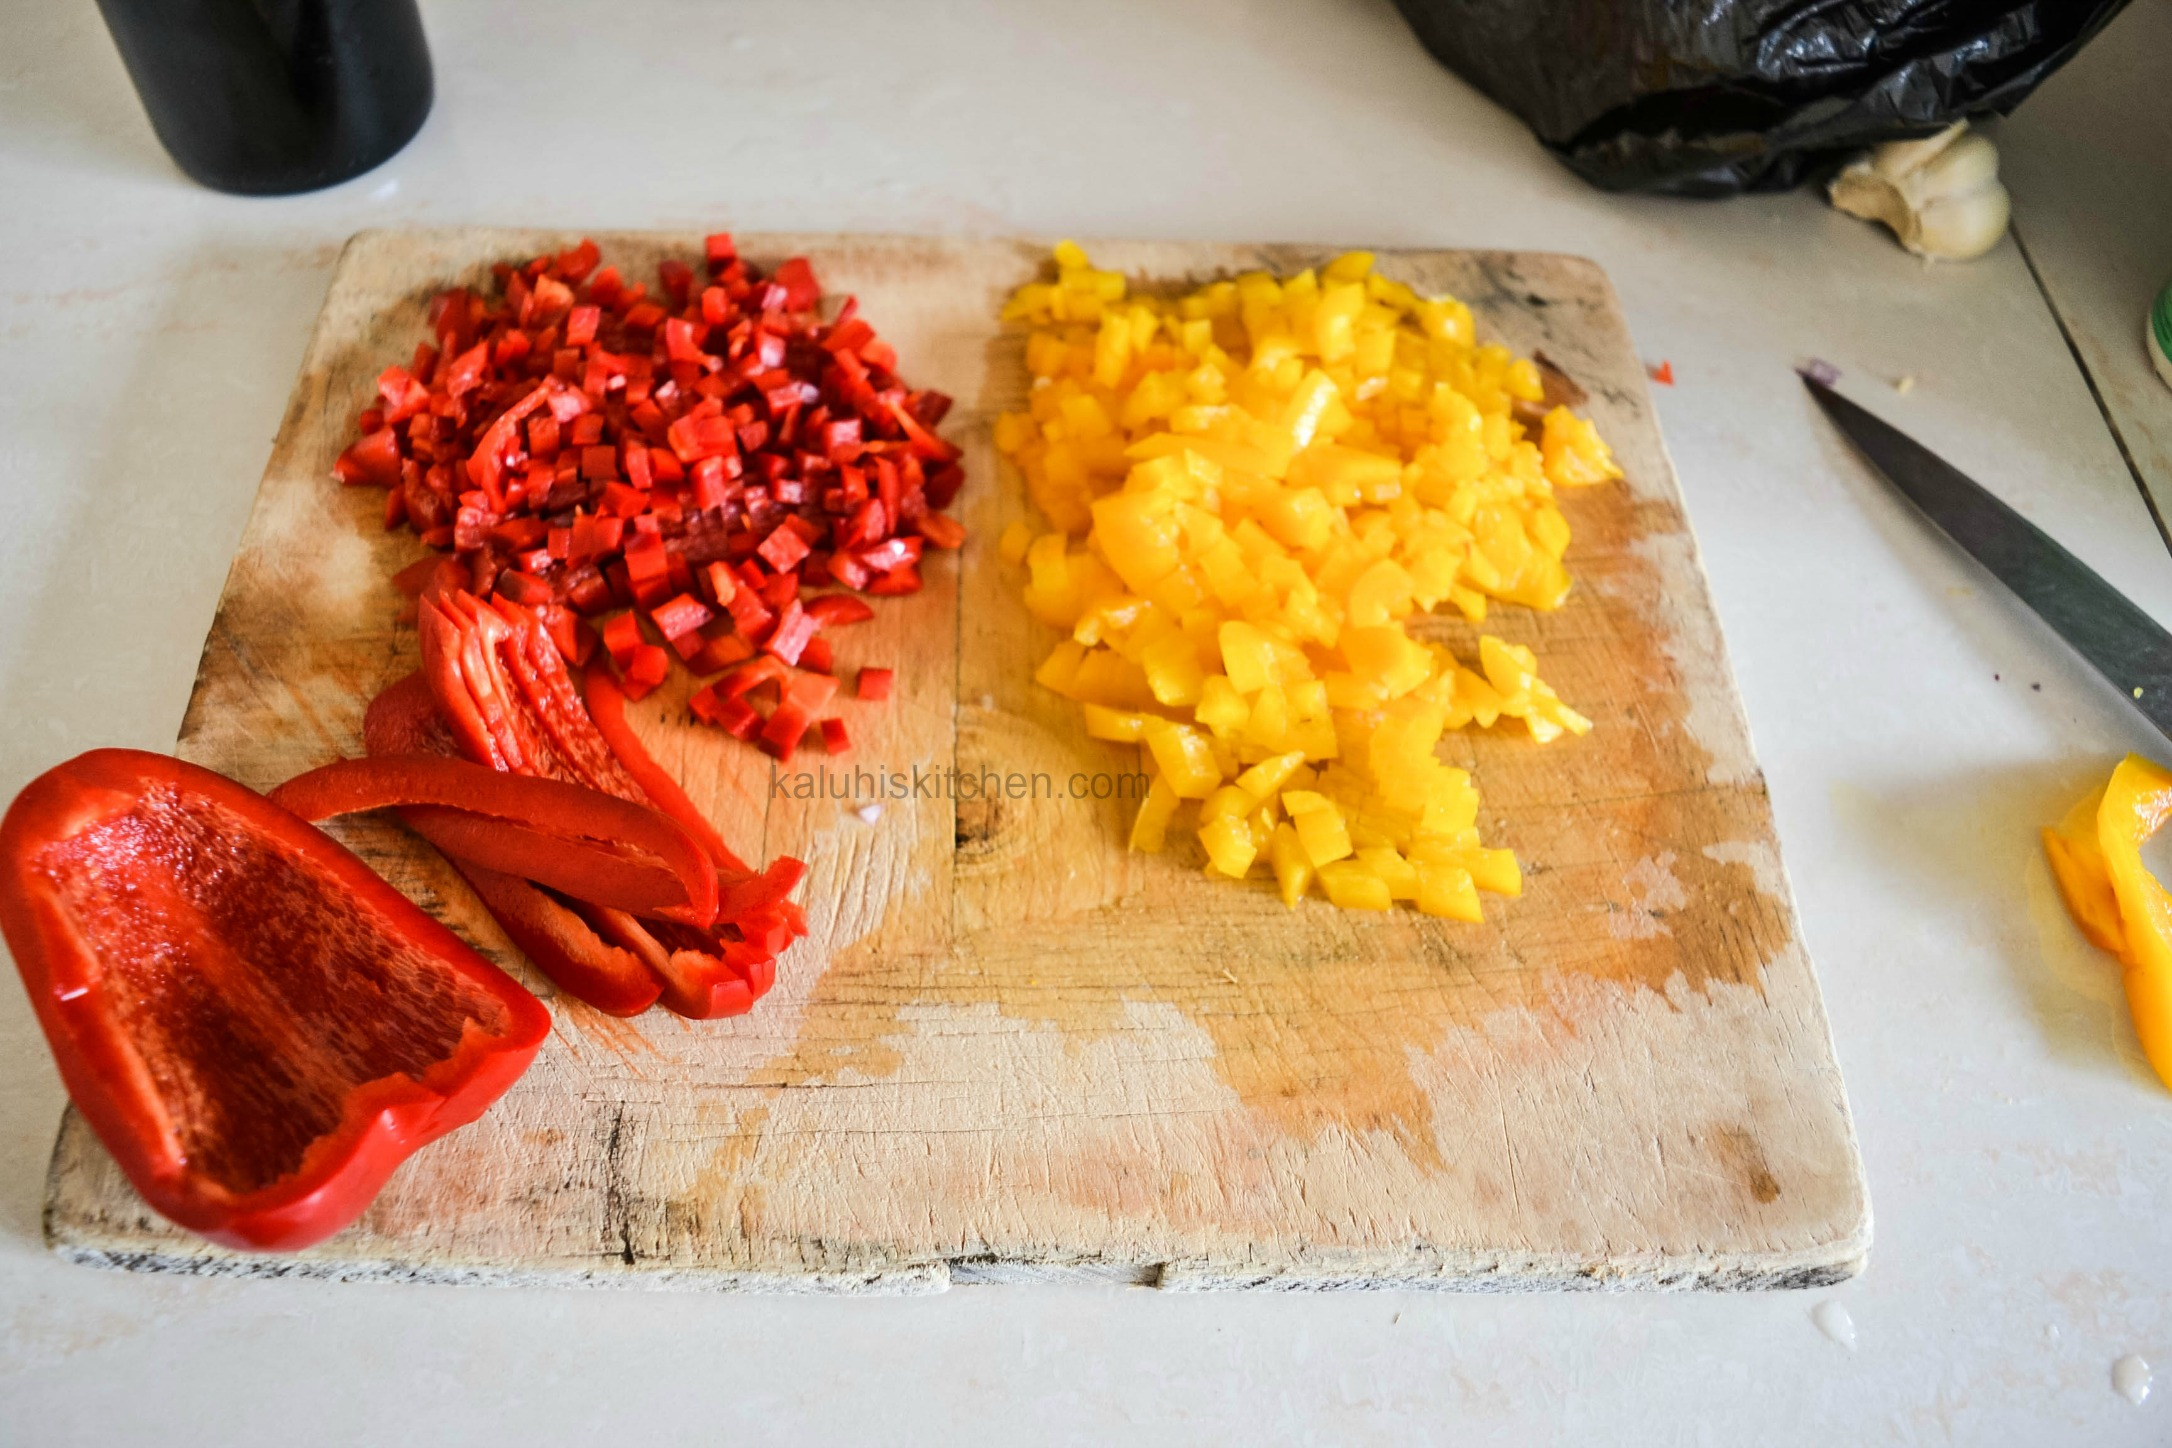 red and yellow bell pepper add color to beef recipes and nutrients too_red wine beef dry fry_kaluhiskitchen.com